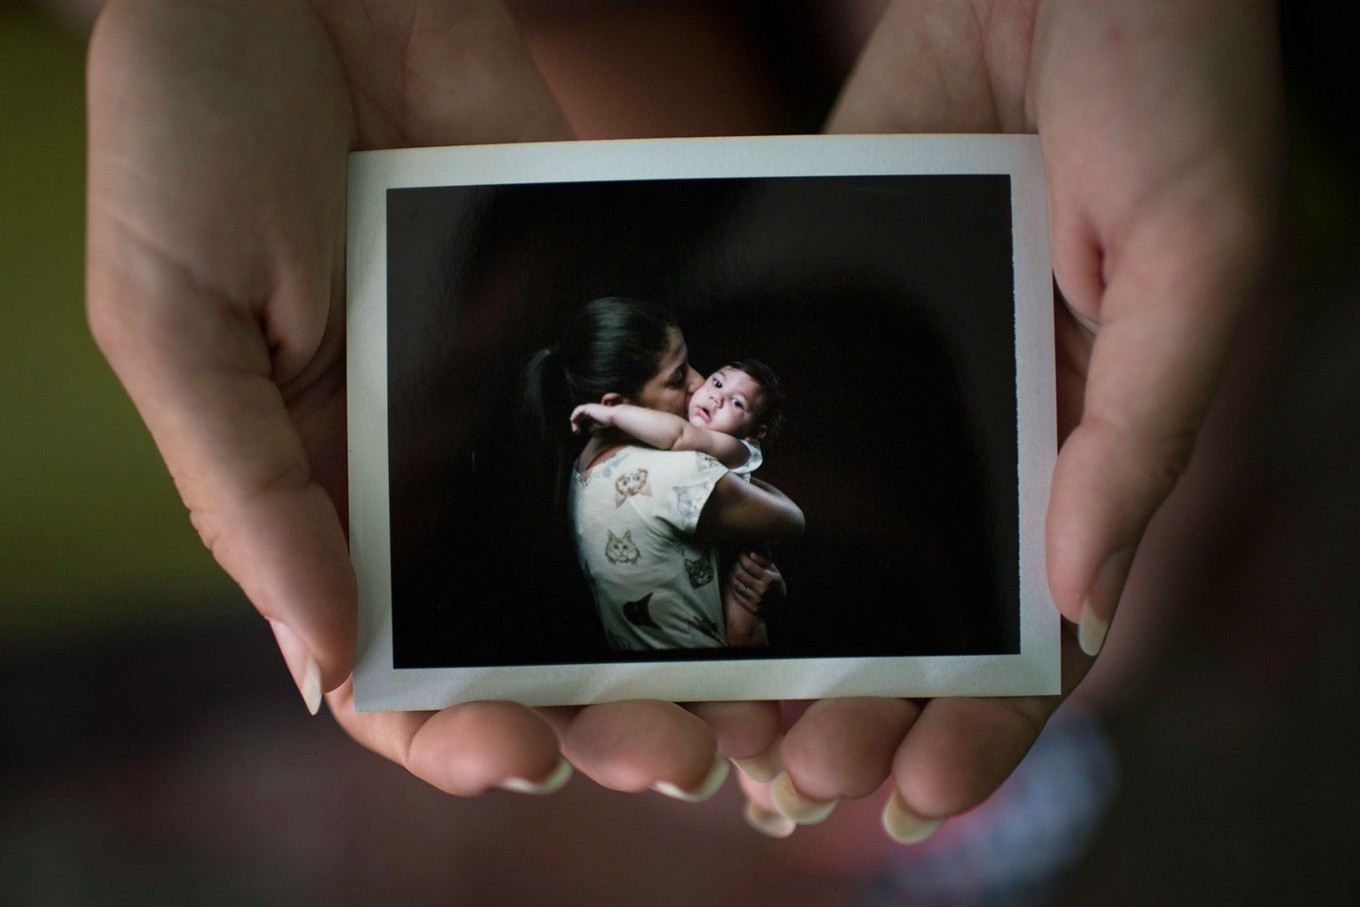 In this Sept. 26, 2016 photo, Angelica Pereira holds a instant film photo of her and her daughter Luiza, who was born with microcephaly, one of many serious medical problems that can be caused by congenital Zika syndrome, in Santa Cruz do Capibaribe, Pernambuco state, Brazil. For a brief moment, mothers with 1-year-old babies with microcephaly, forgot about getting that hard-to-find drug needed to prevent their babies from having seizures or the uncomfortable stares directed at their children born with small heads because of a Zika virus infection in the womb. Instead they were just like any other moms getting the first formal photographs of their babies. AP Photo/Felipe Dana